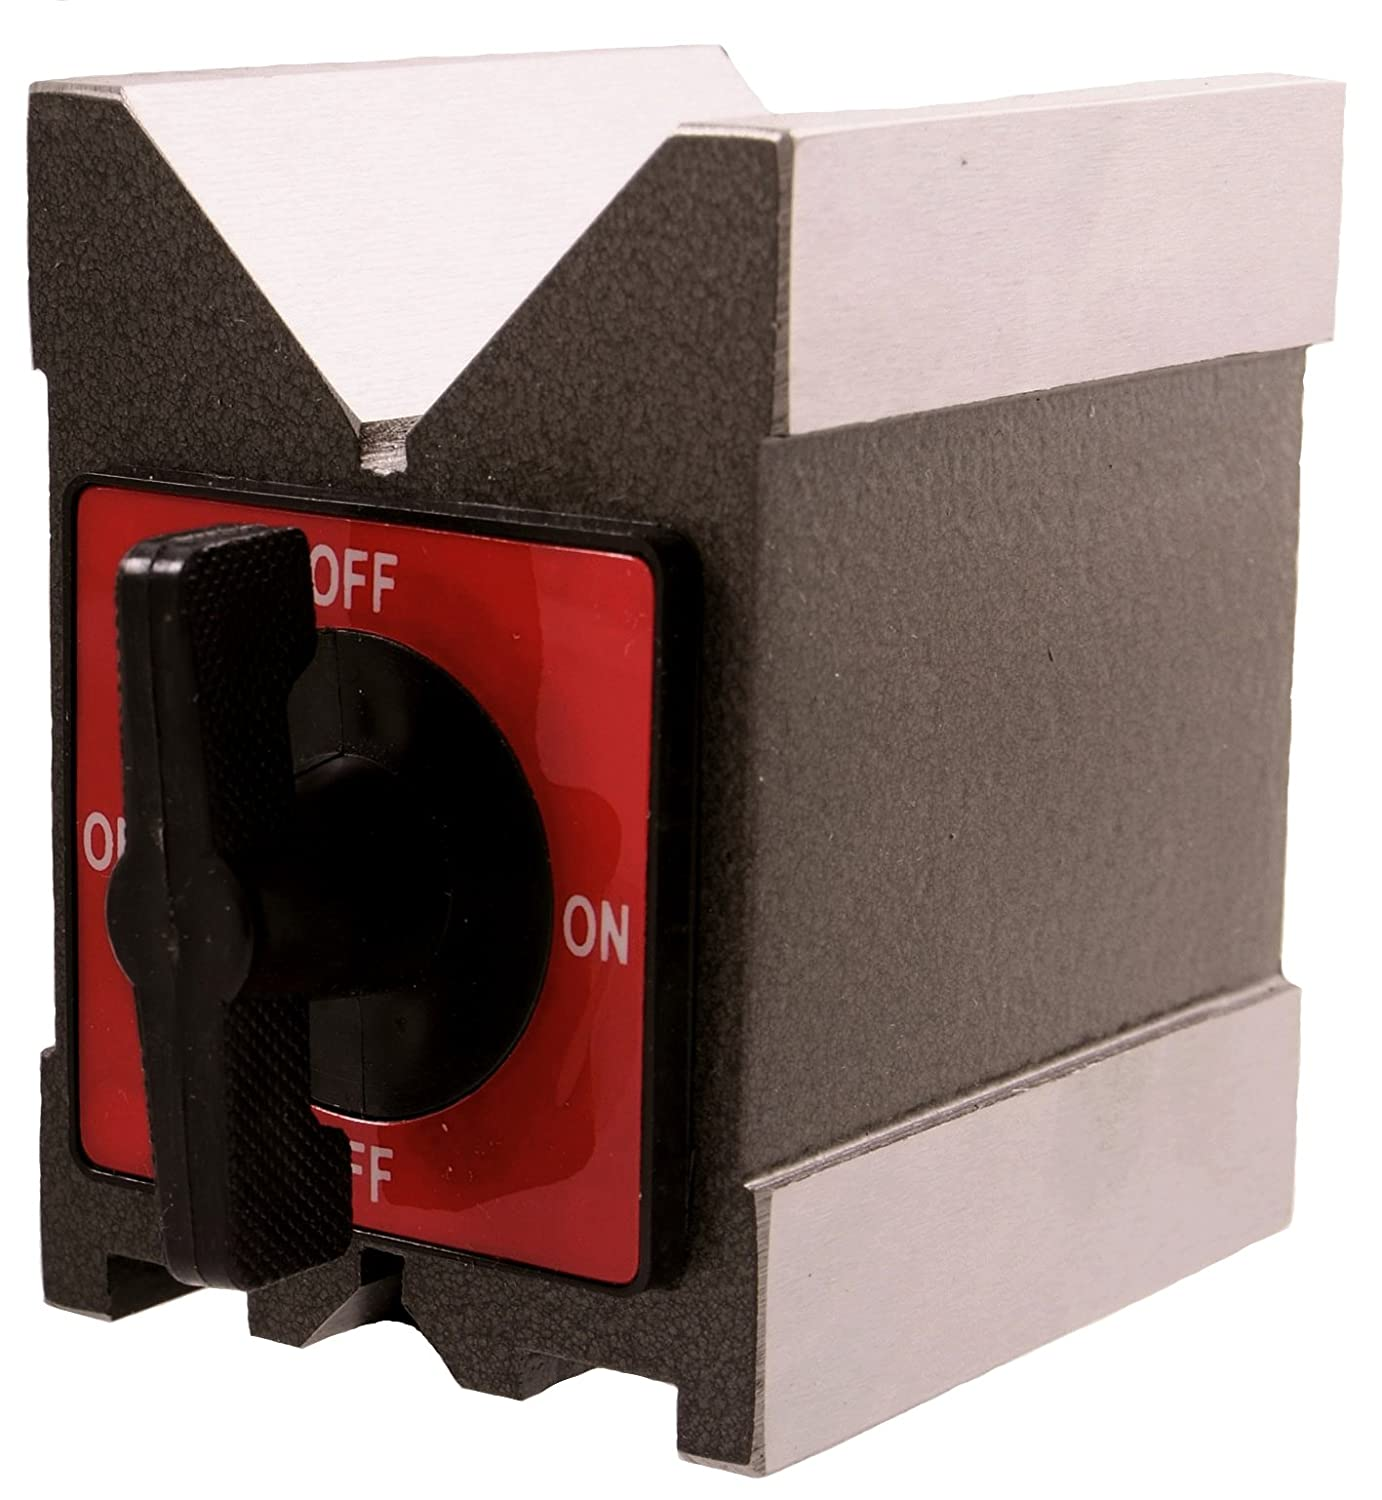 3402-0992 HHIP 3.75 X 2.75 X 5 INCH MAGNETIC V-BLOCK WITH SWITCH